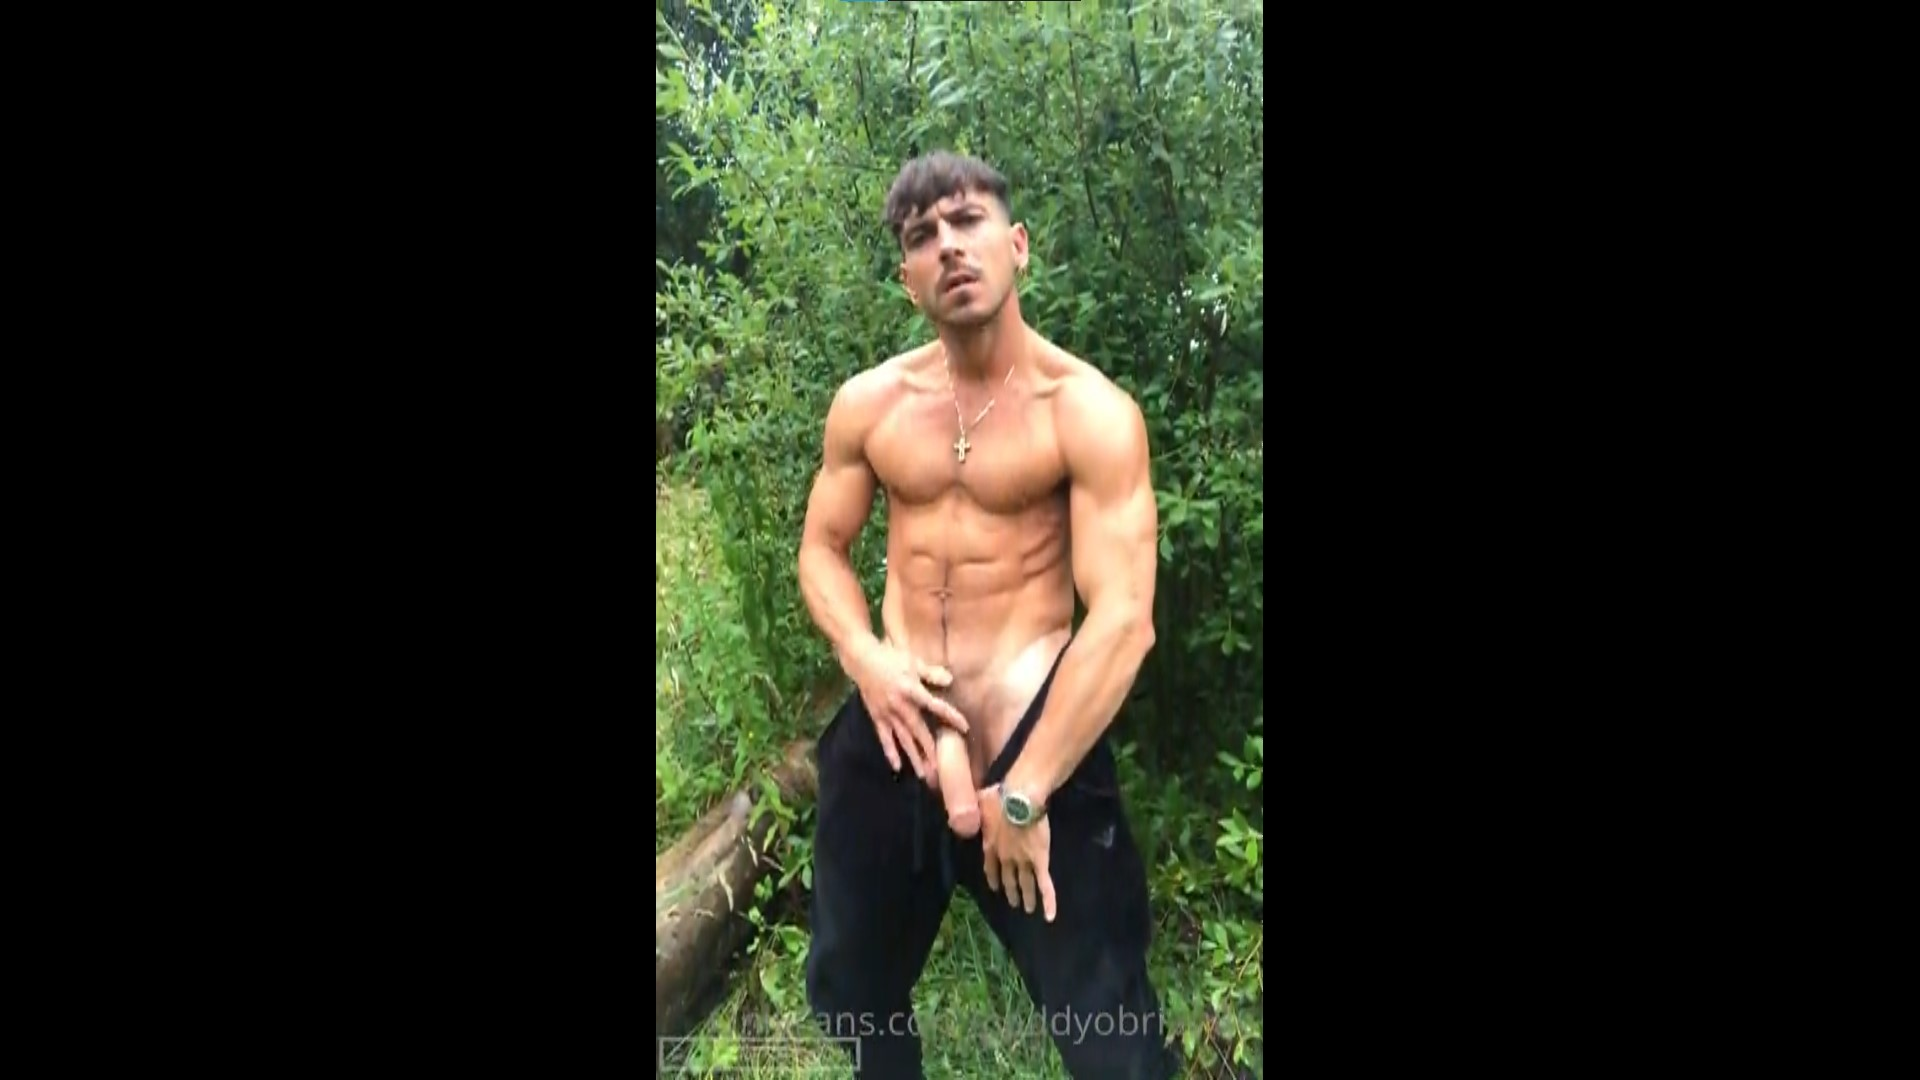 Jerking off in the woods - Paddy O'Brian